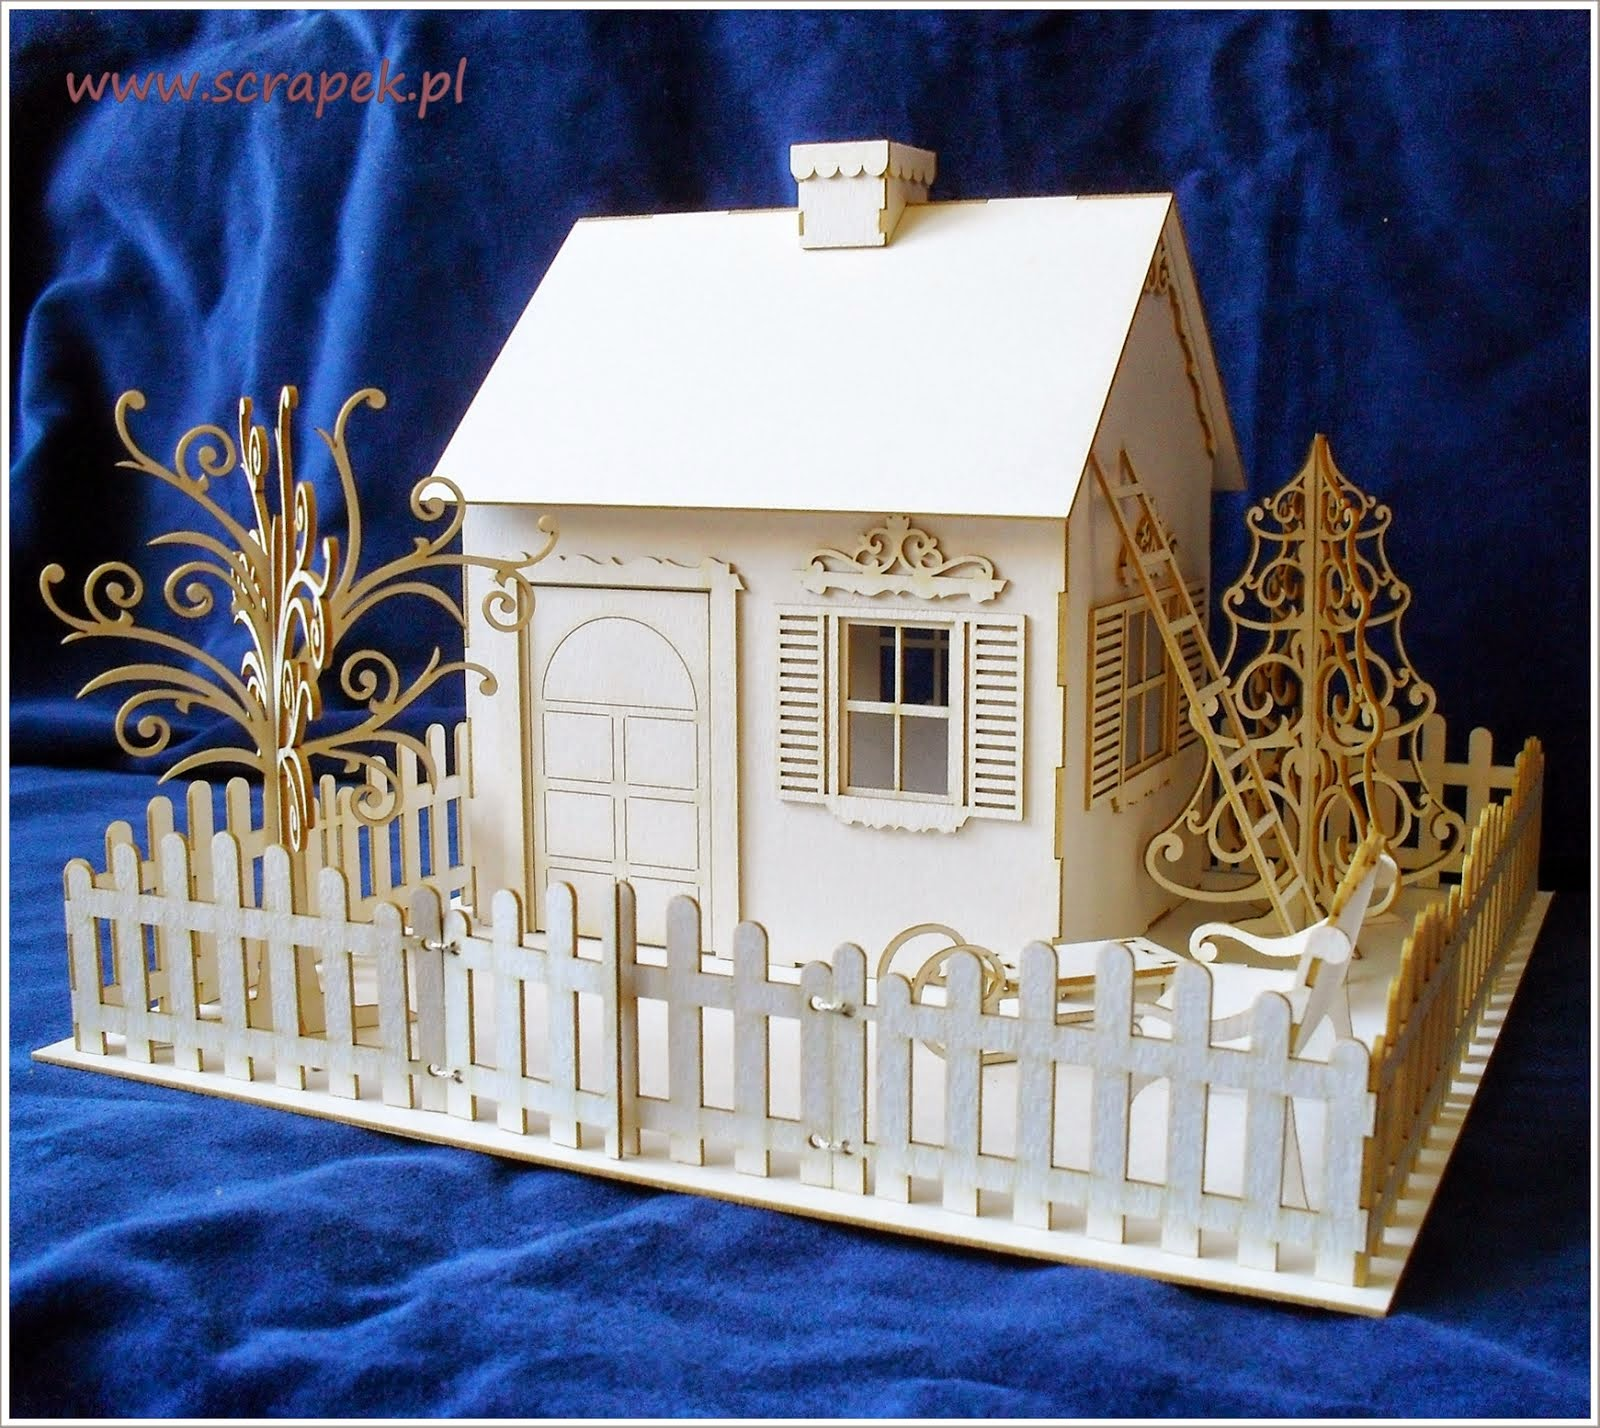 Tekturki 3D/Chipboard 3D